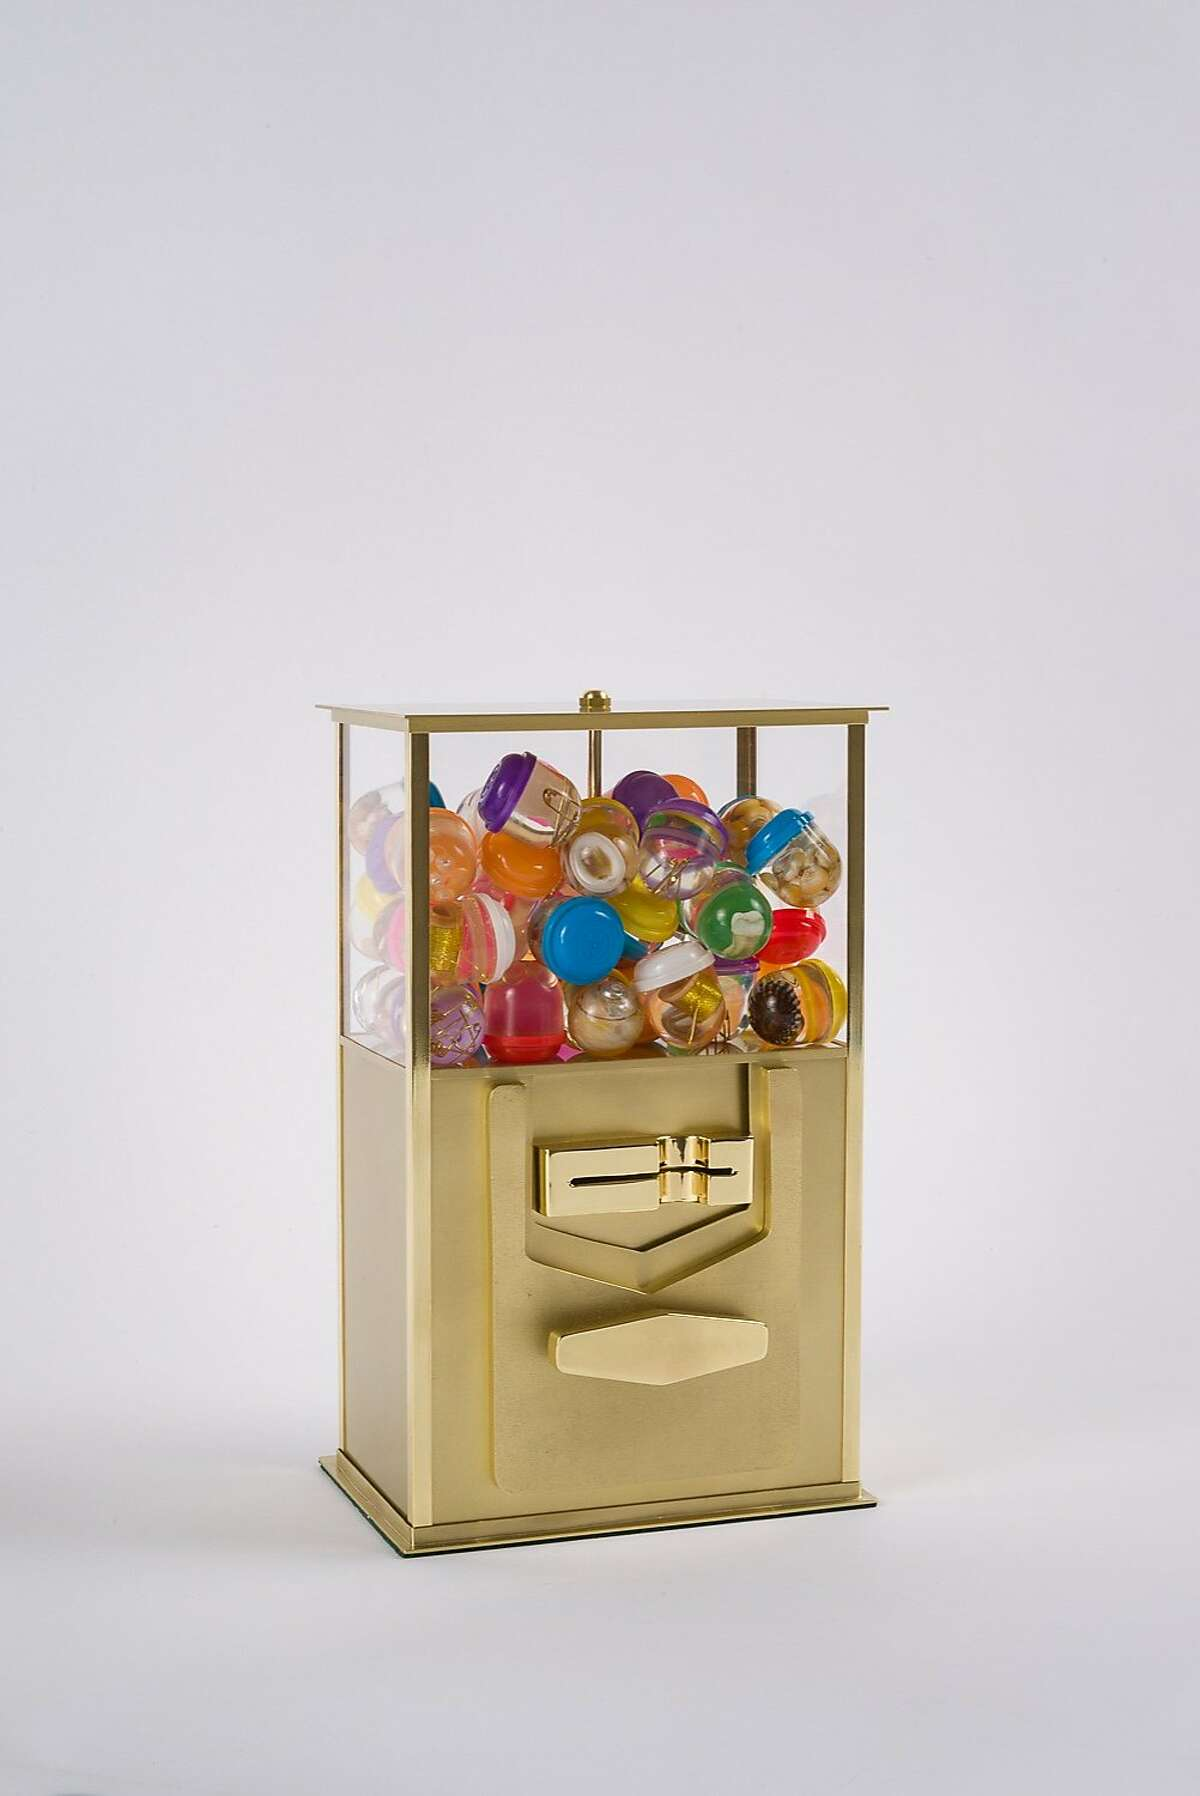 Yvonne Escalante, Your Turn, 2015. Brass, resin, acrylic sheet, felt, and found objects, 10 3/4 x 6 1/2 x 5 1/2 in. Photo by Johnna Arnold. The 2015 Dorothy Saxe Invitational: Tzedakah Box. On view April 9-May 17, 2015. The Contemporary Jewish Museum, San Francisco.